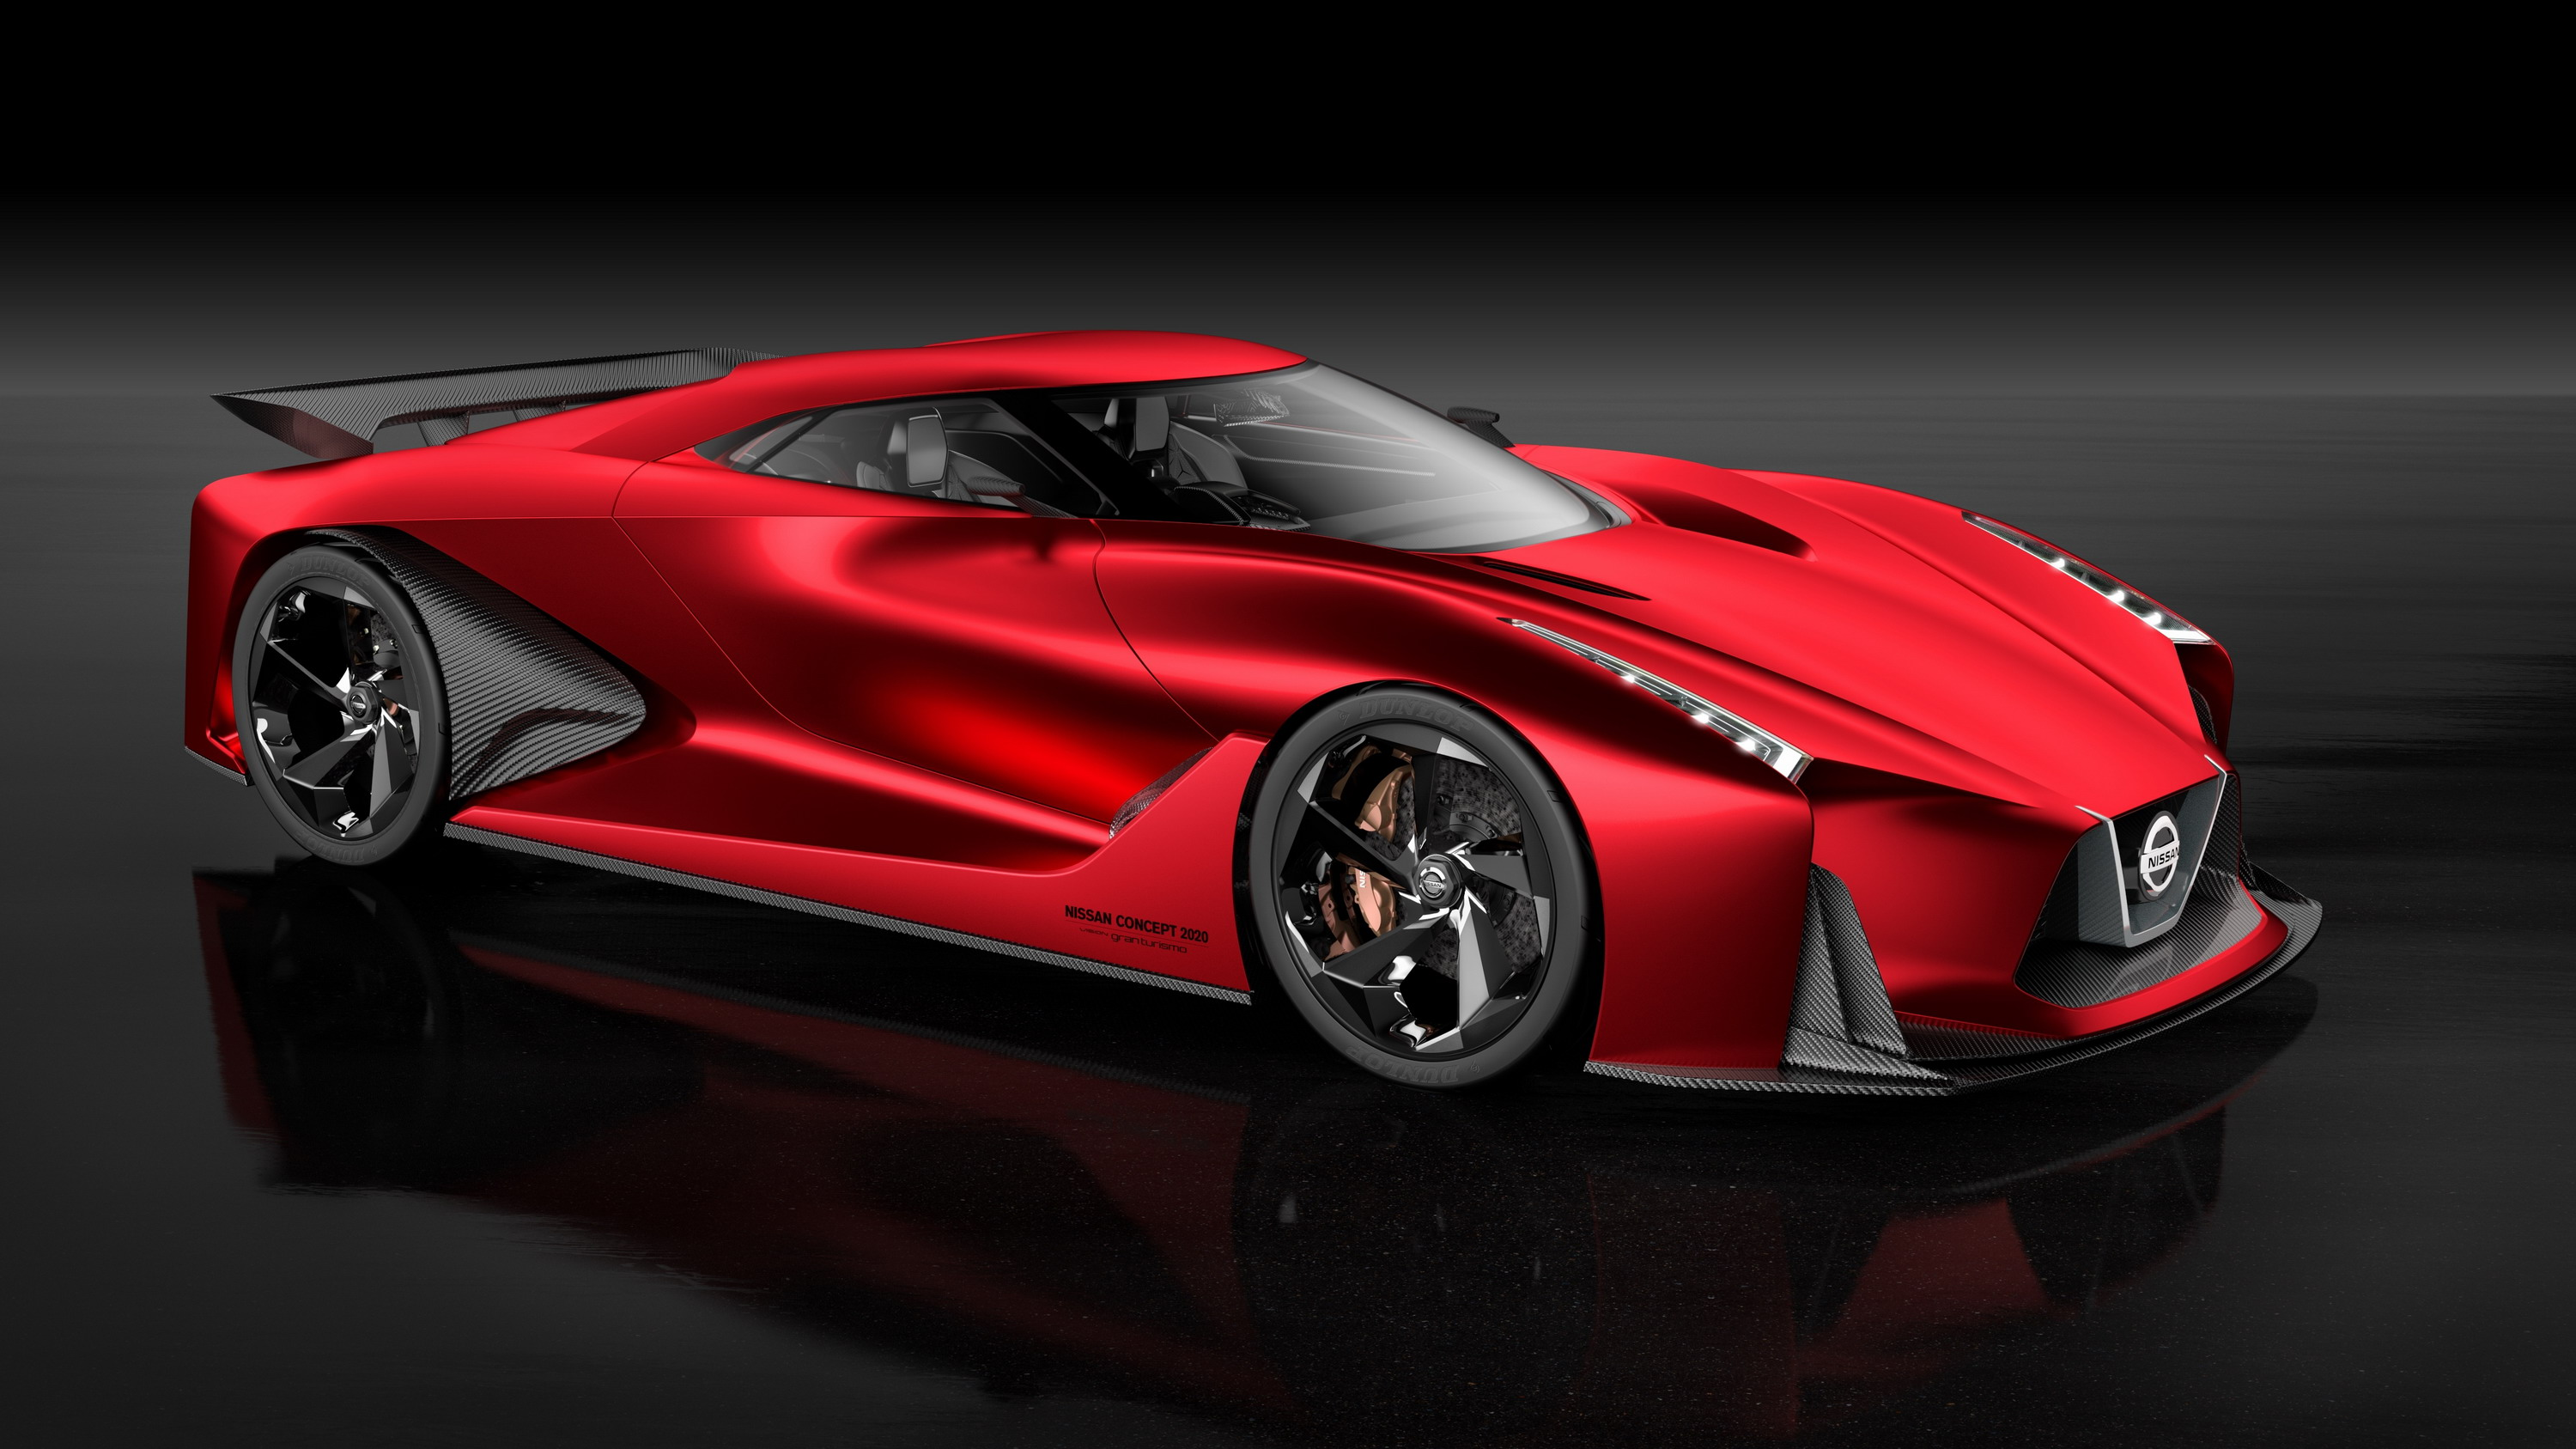 Nissan Gtr R36 2020 Concept Price Interior Release Date 2019